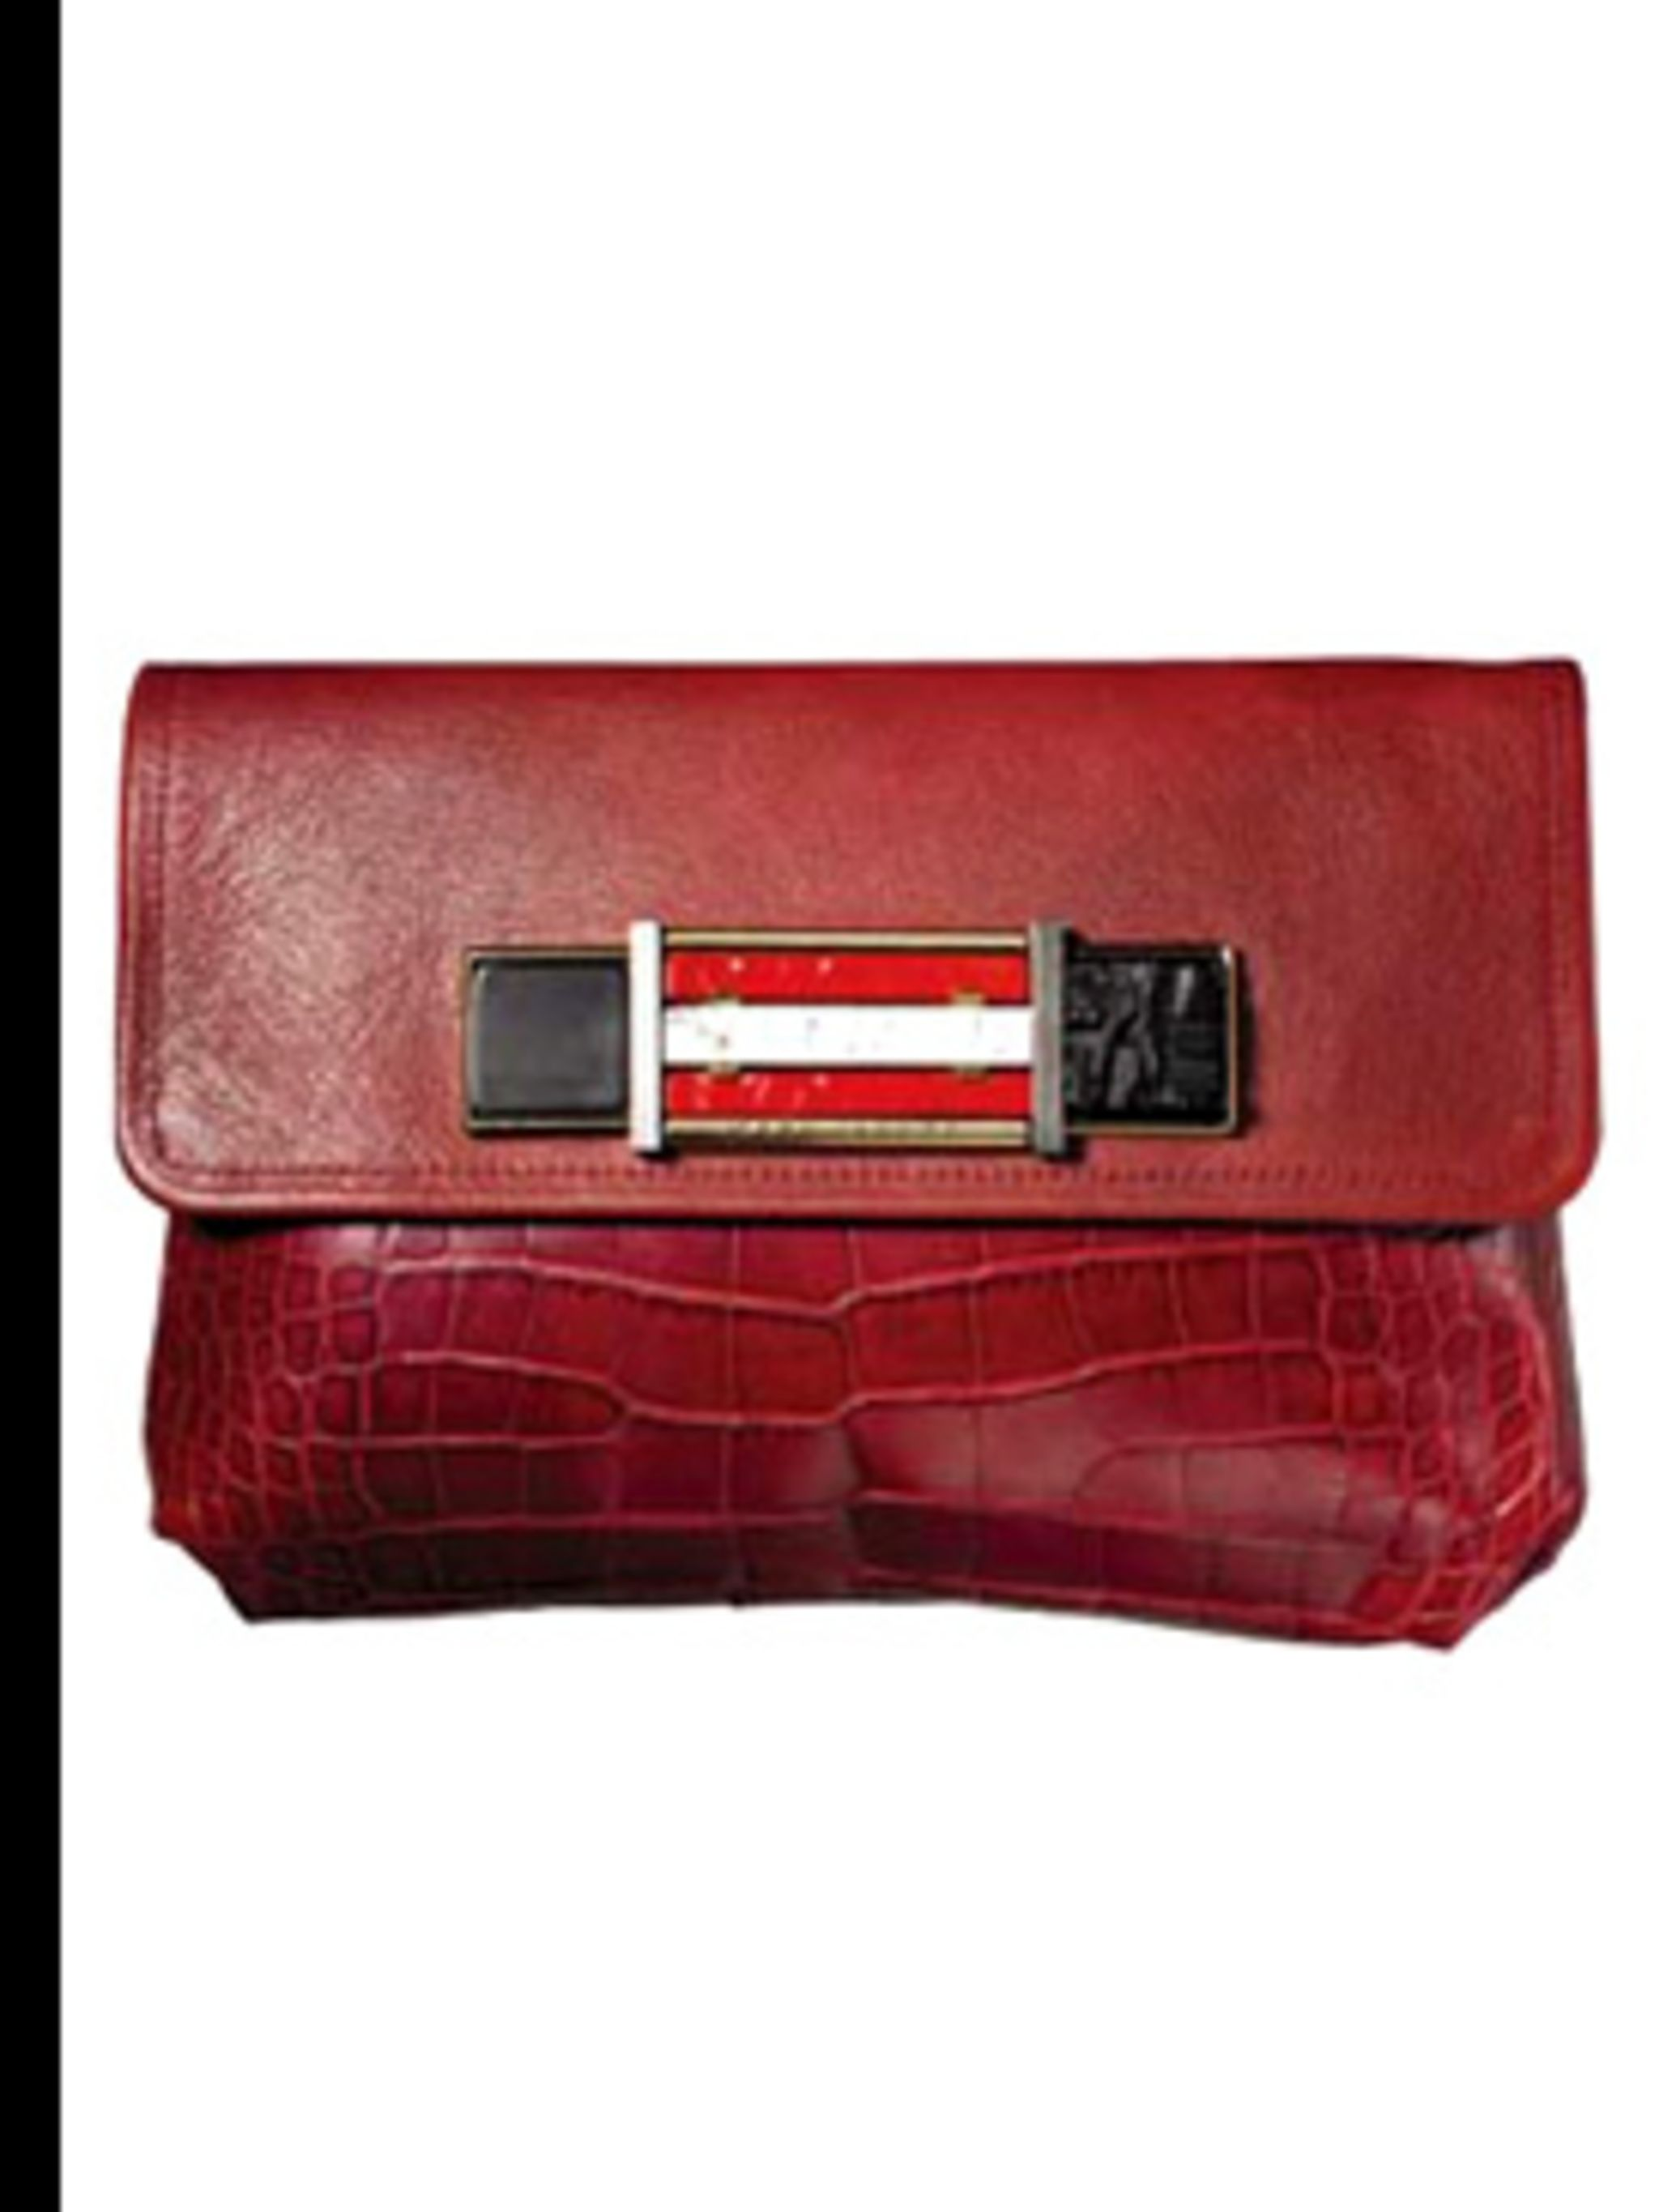 <p>Crocodile clutch, price on request, by Marc Jacobs, for stockists call 020 7399 1690</p>